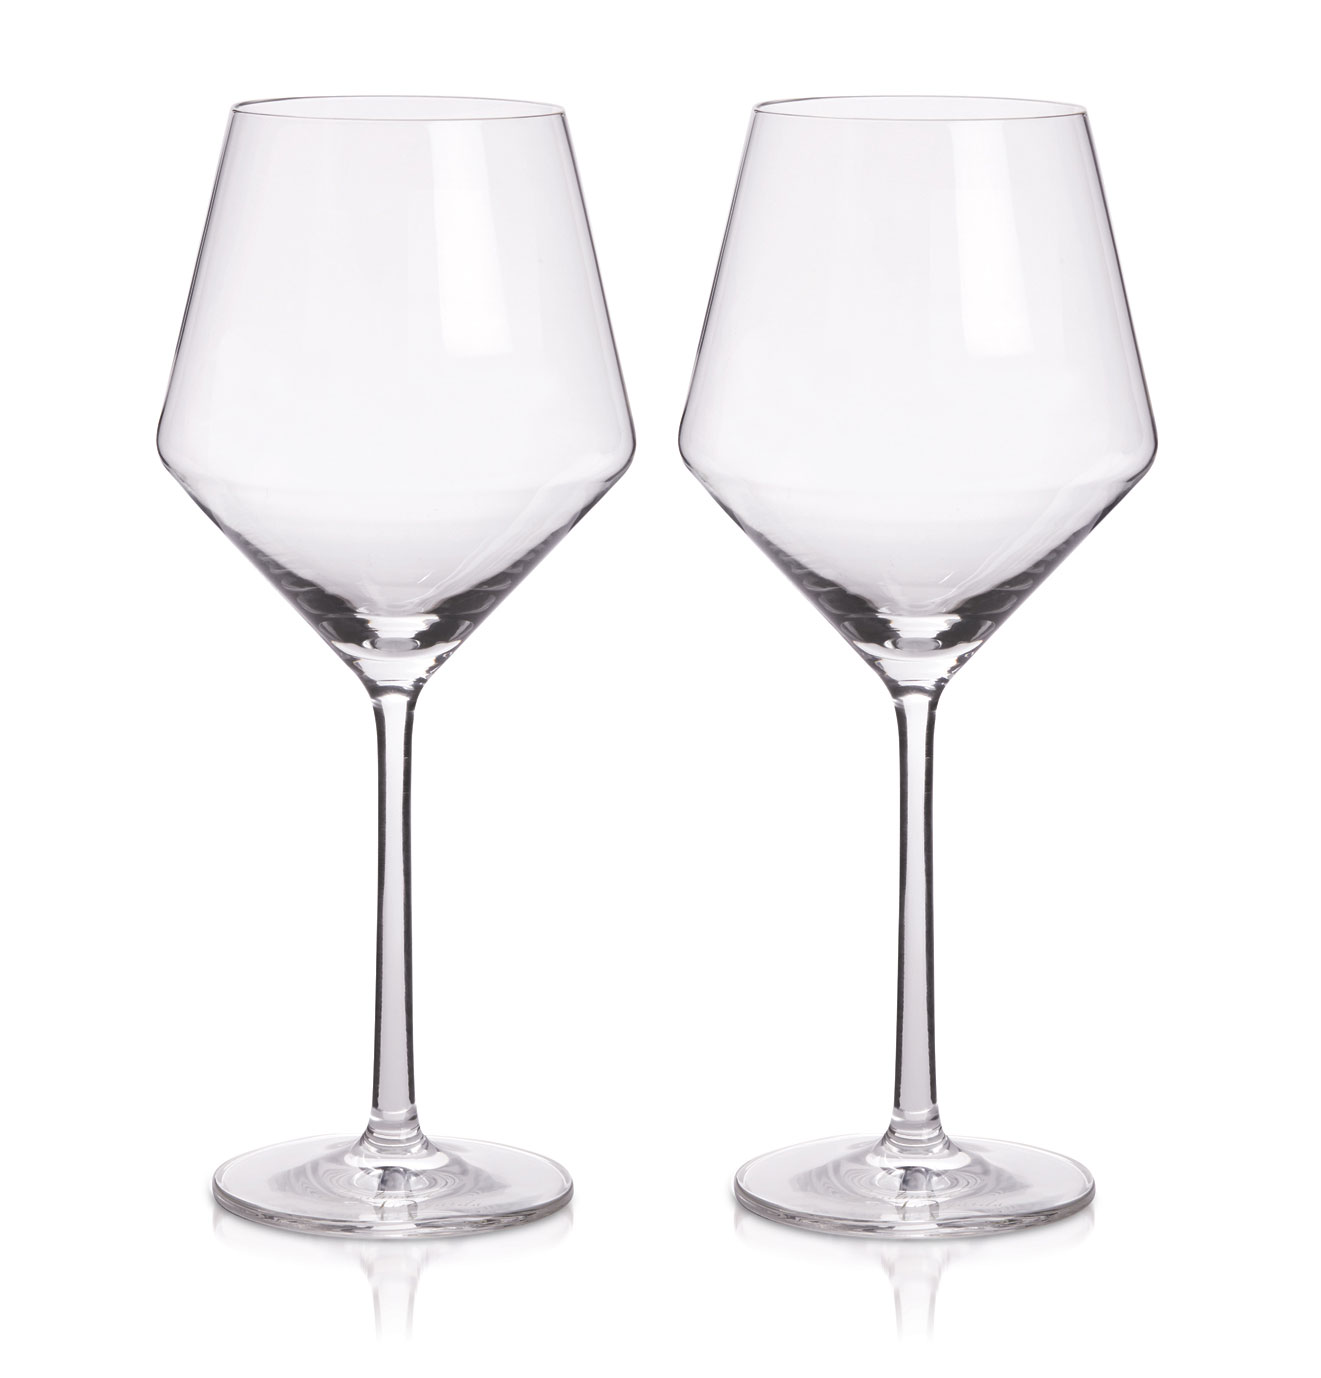 Landmark Wine Glasses